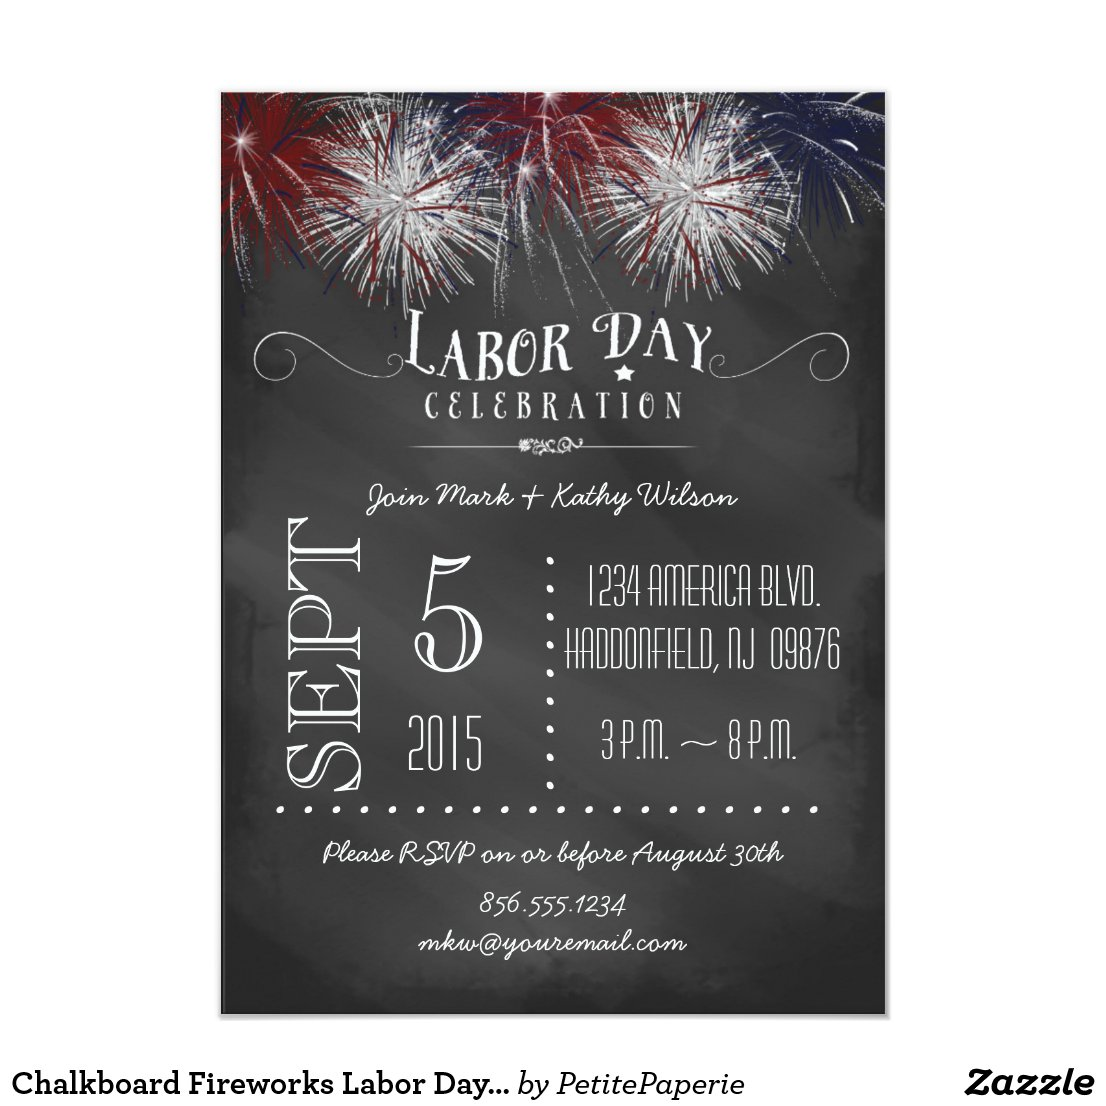 Chalkboard Fireworks Labor Day Party Invitation